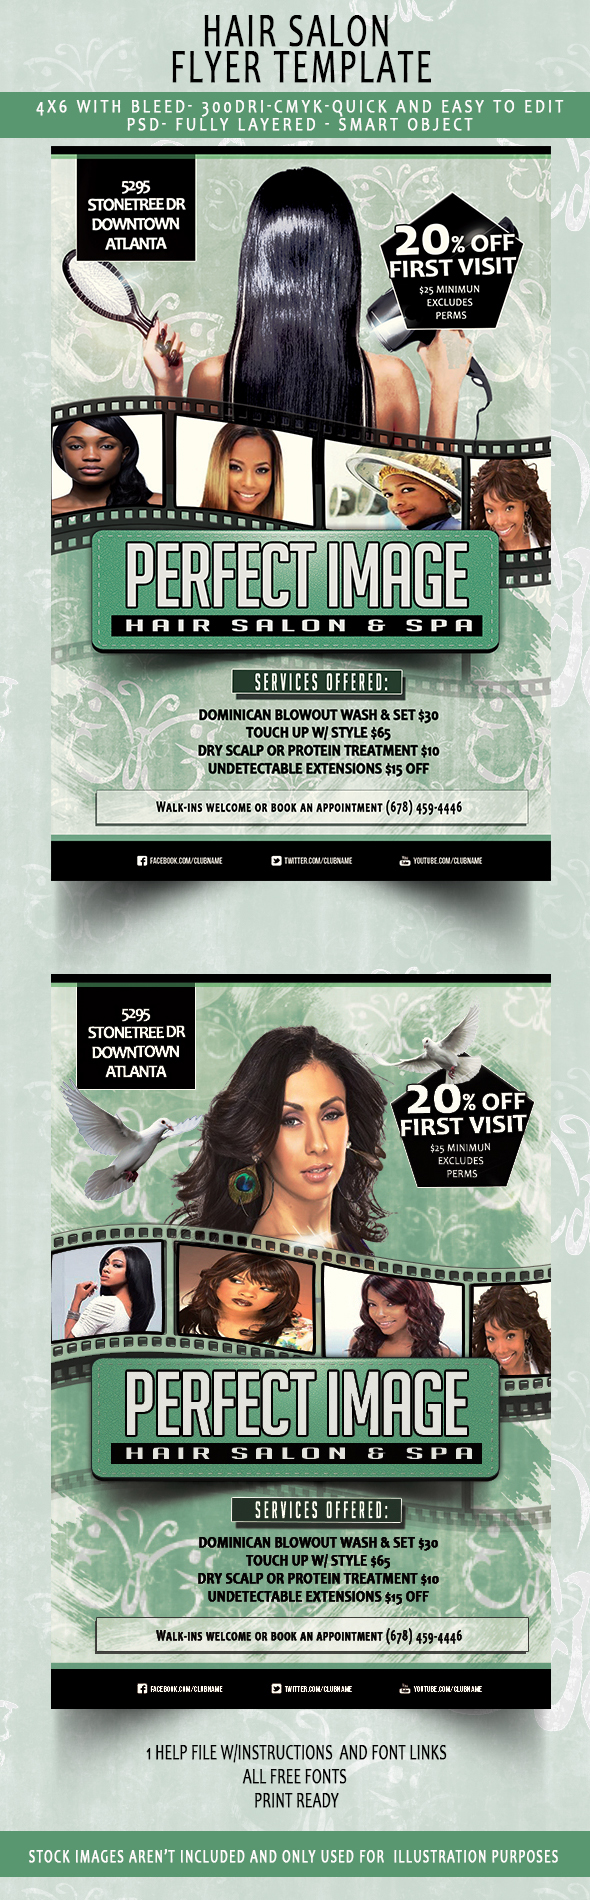 Beauty/Hair Salon Flyer Template (Download NOW) On Behance